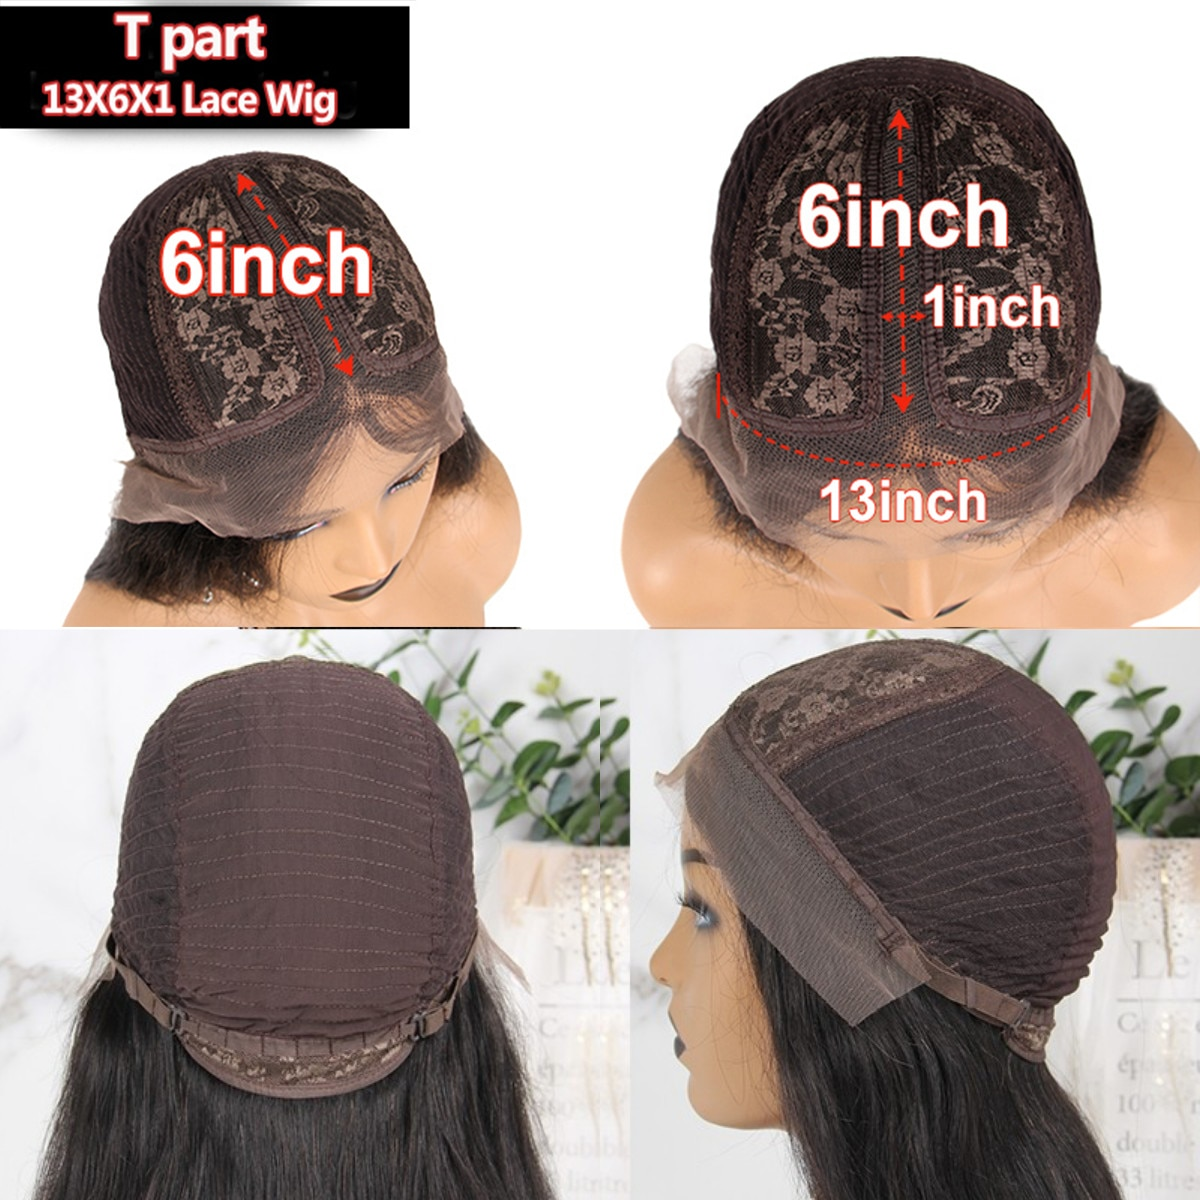 ALICROWN 180% Density 13*6 Curly Lace Front Human Hair Wigs Pre-Plucked Non-Remy Lace Front Wigs For Women Bleached Knots